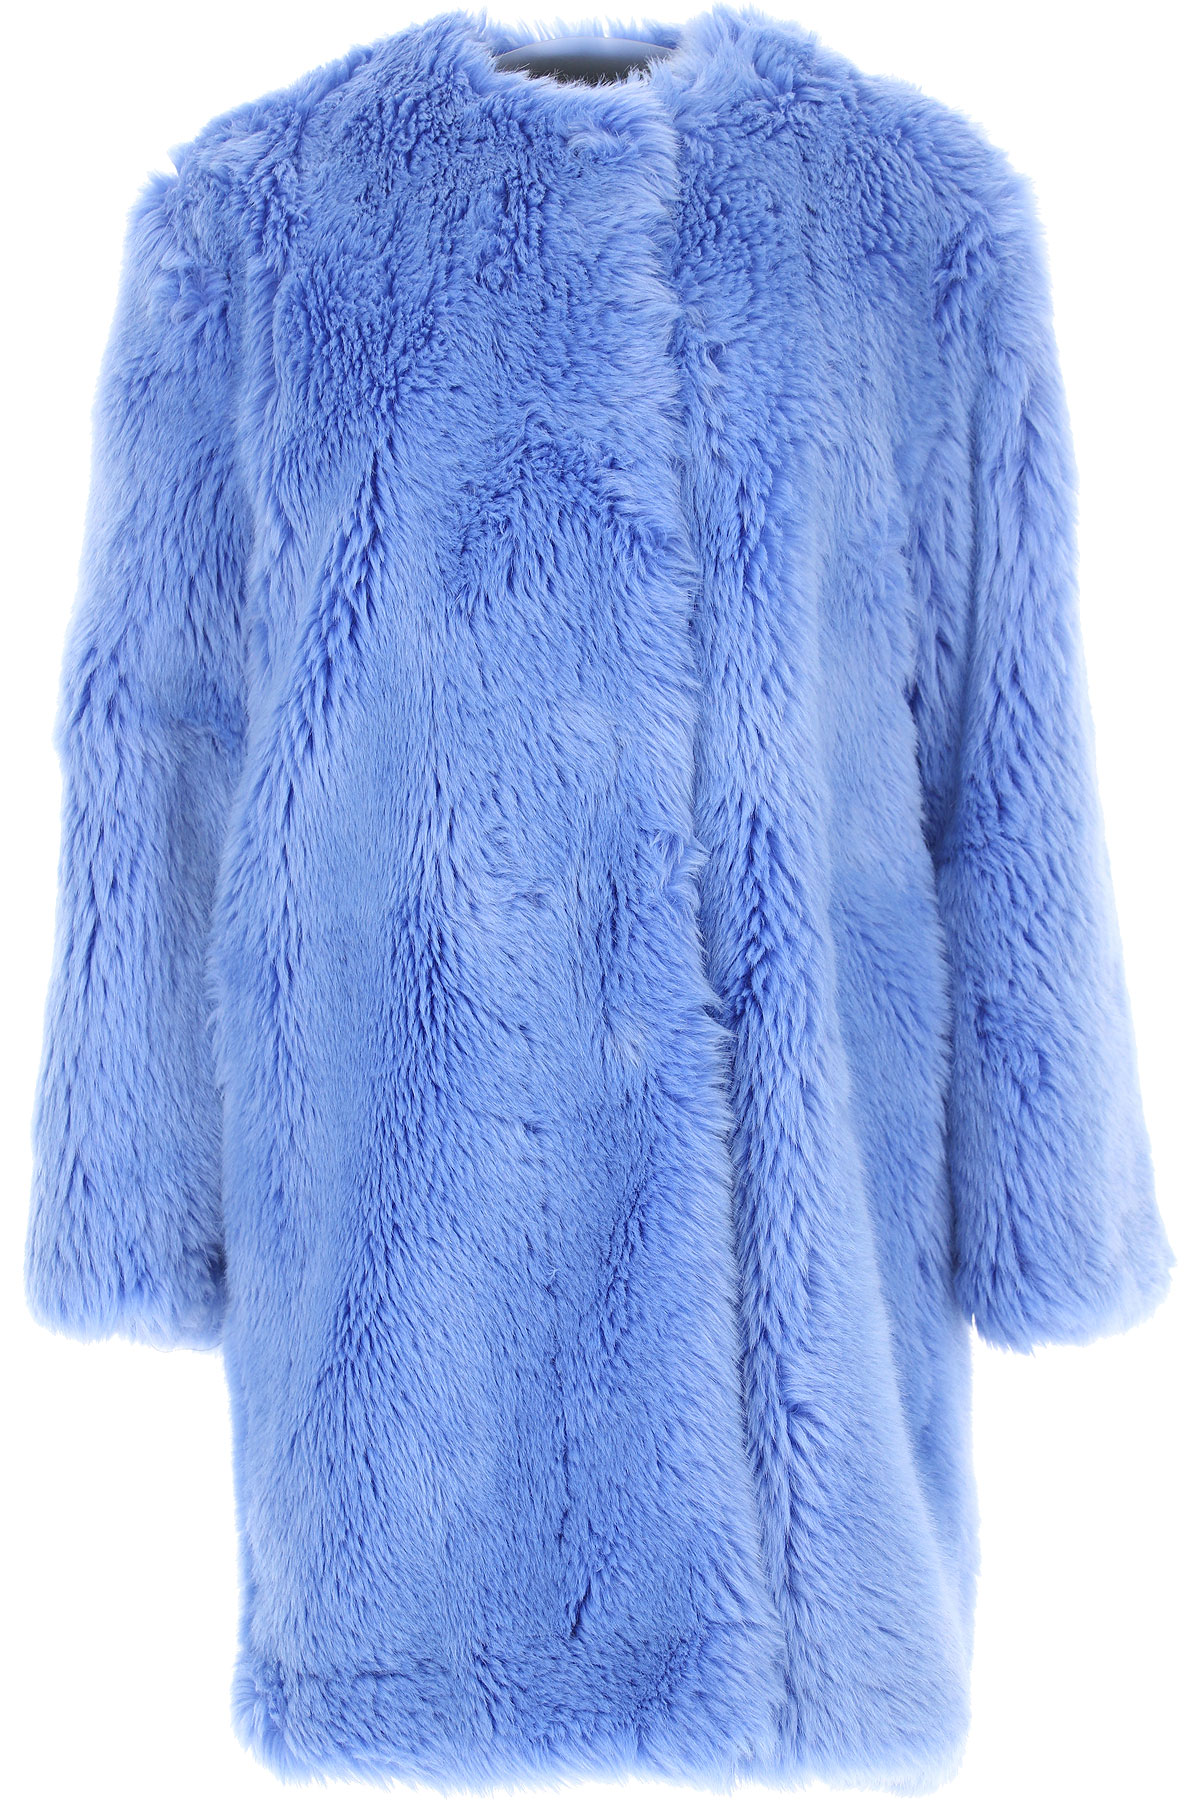 Image of MSGM Women\'s Coat, Sky, Acrylic, 2017, UK 6 - US 4 - EU 38 UK 8 - US 6 - EU 40